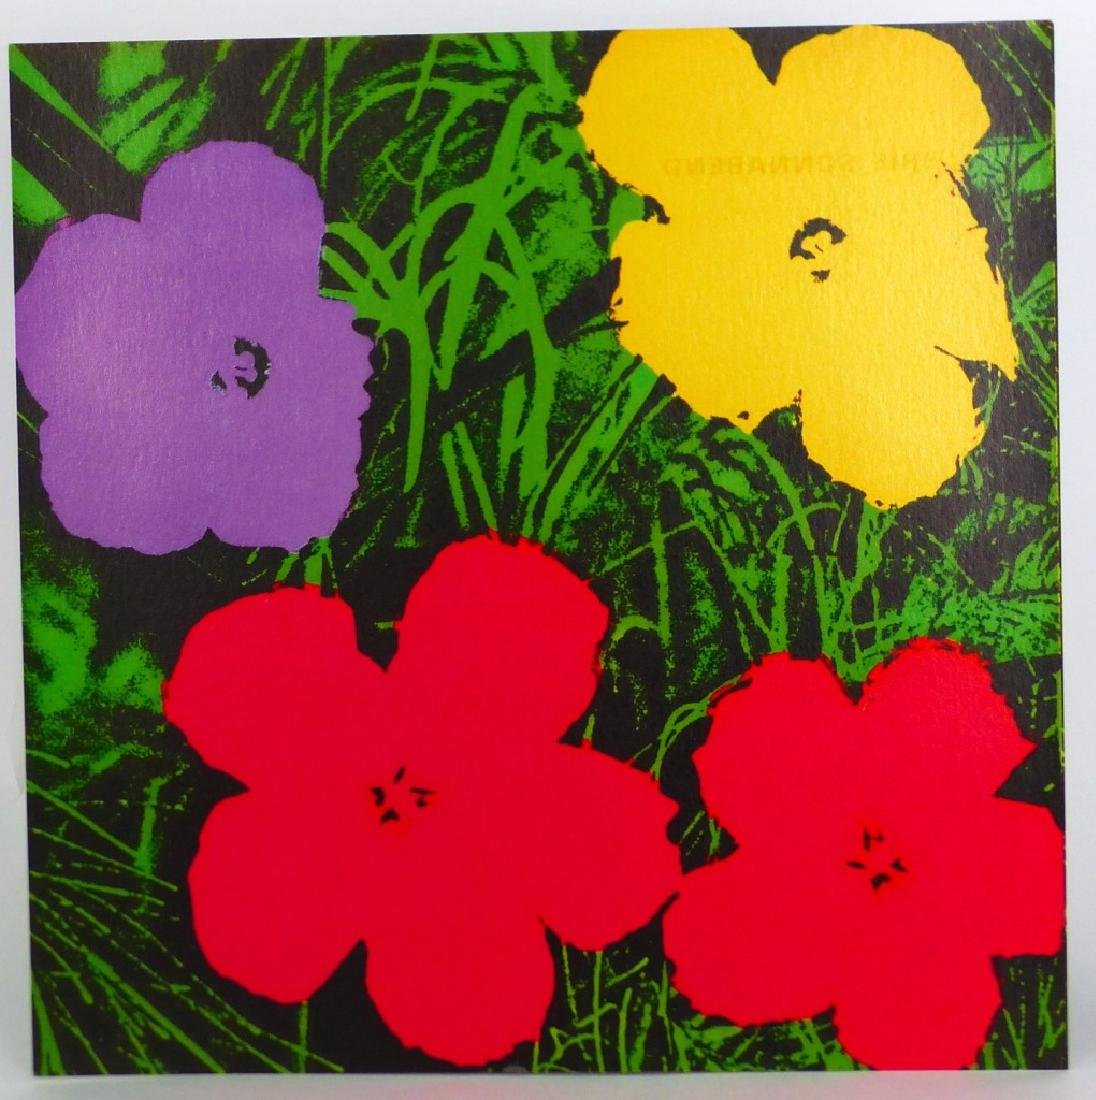 ANDY WARHOL FLOWERS INVITATION SONNABEND